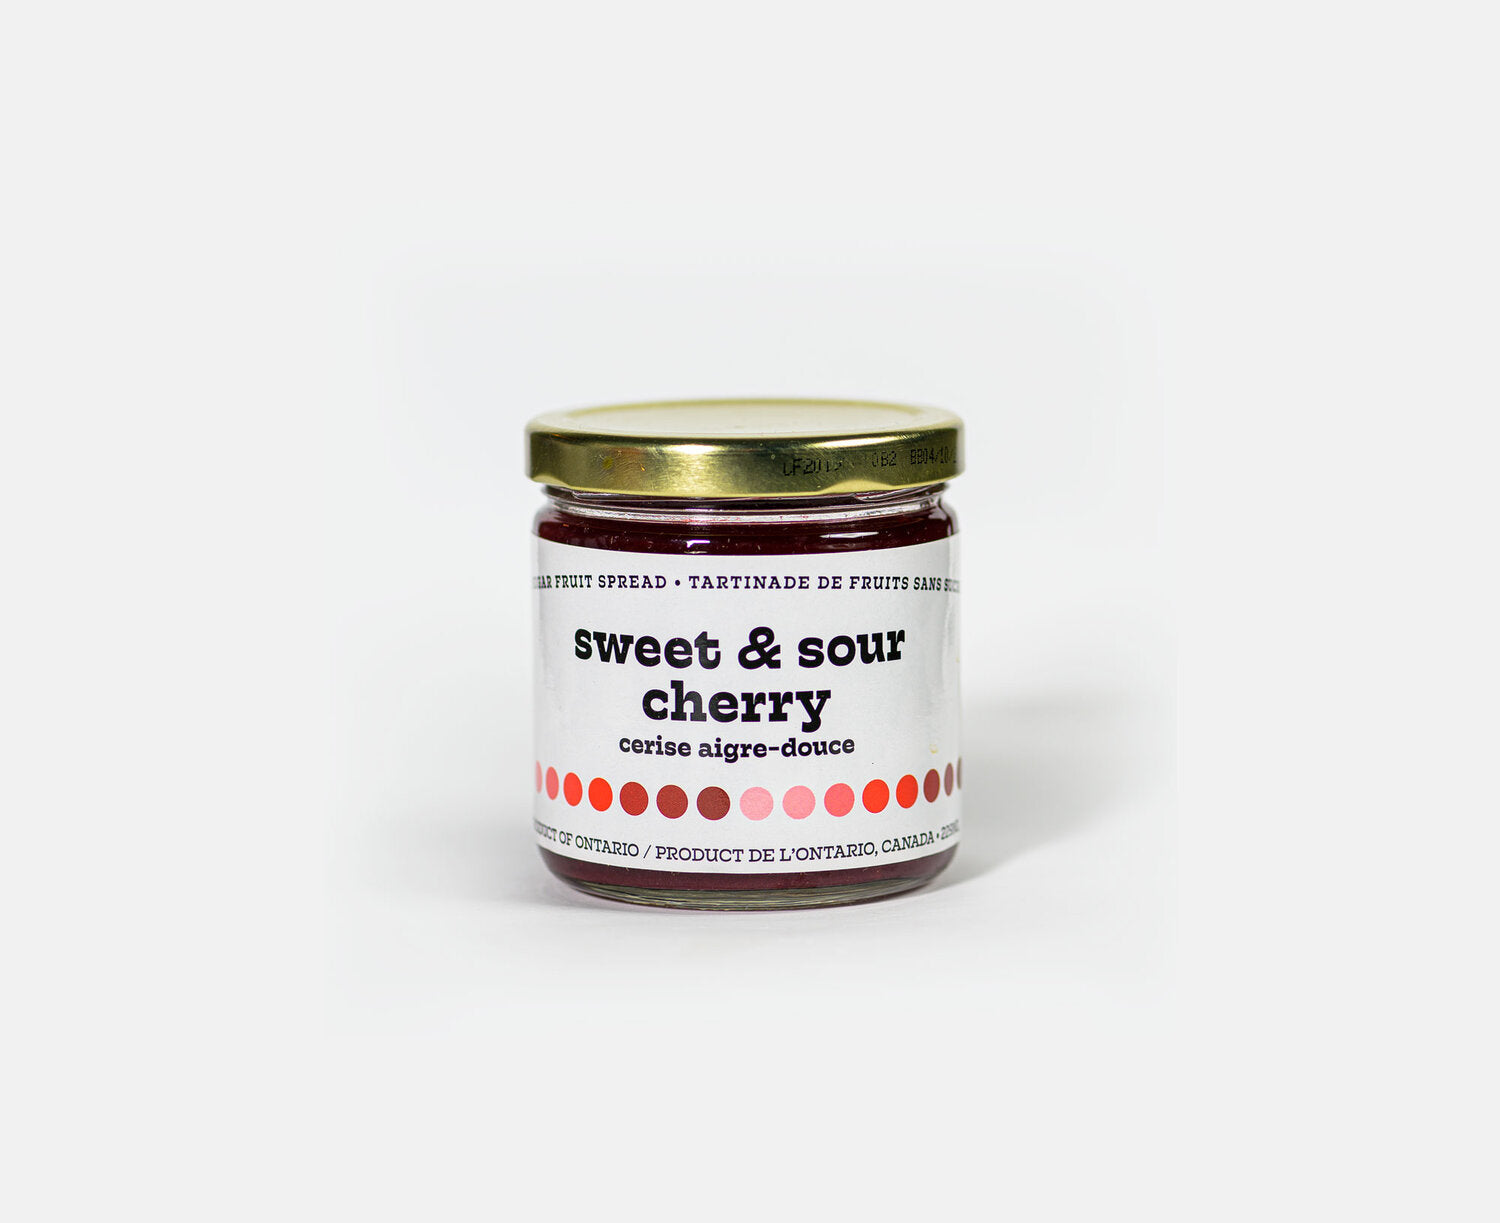 Sweet & Sour Cherry No Sugar Fruit Spread